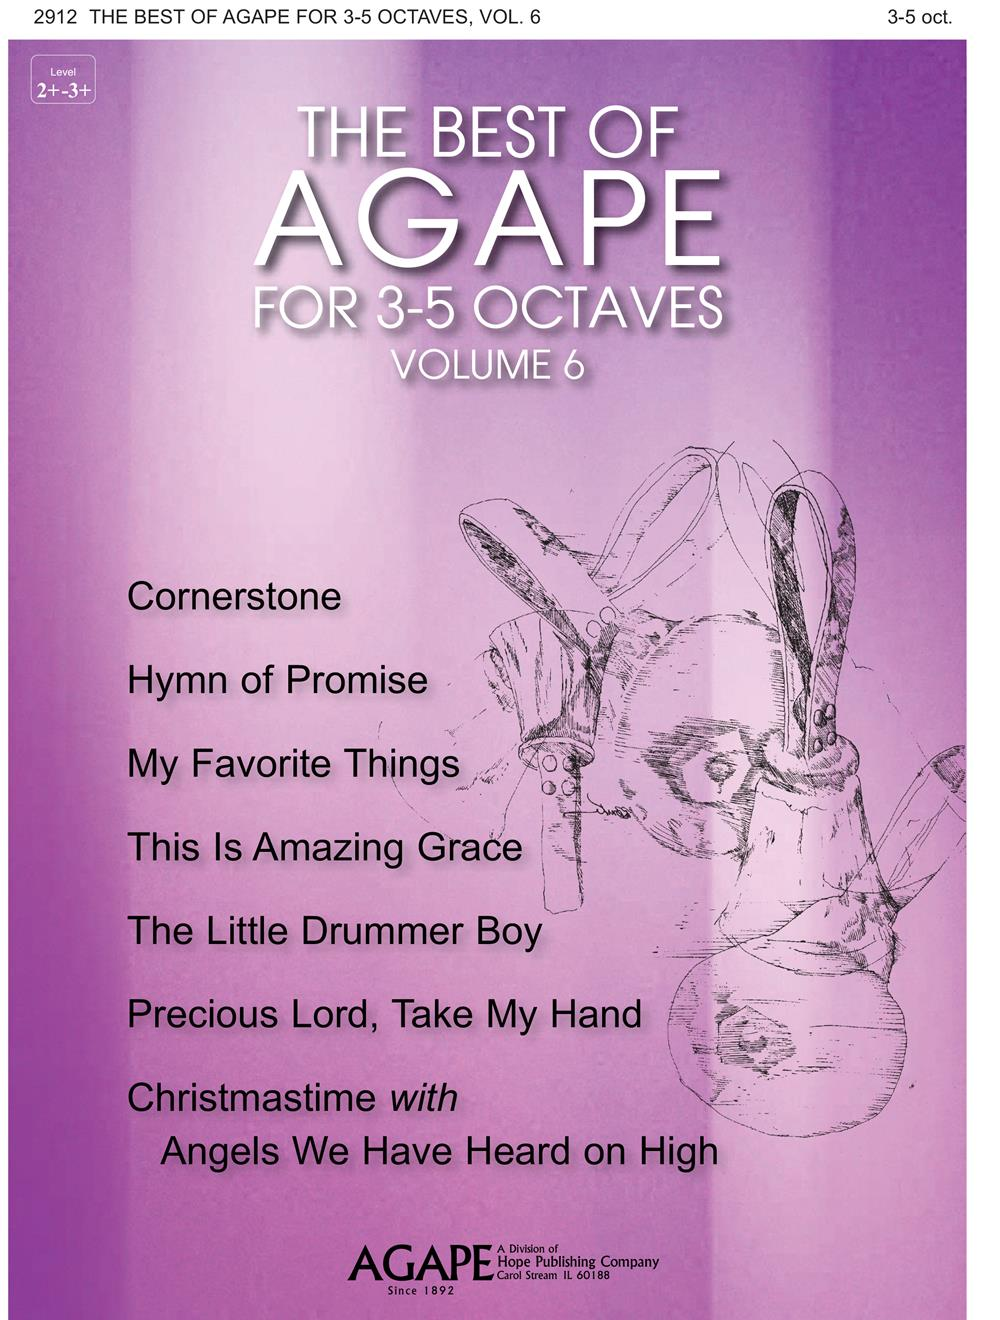 The Best of Agape for 3-5 Octaves Vol. 6 Cover Image